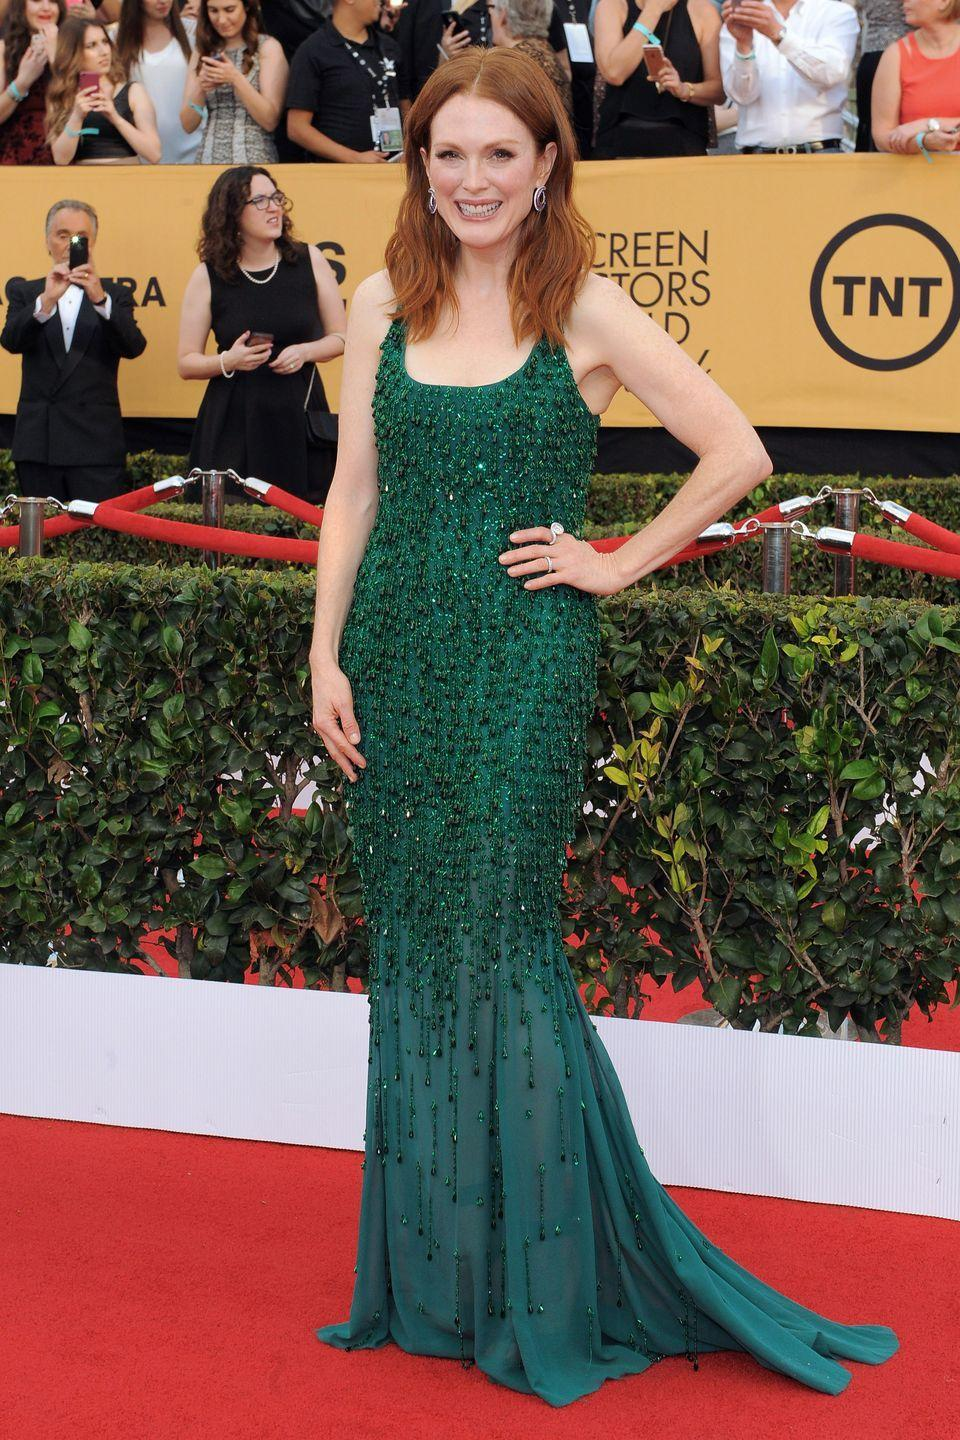 <p>While a <em>Brave</em> sequel hasn't been released (yet!), Merida would probably look like Julianne Moore in this emerald green Givenchy dress when she grows up to be the queen.</p>